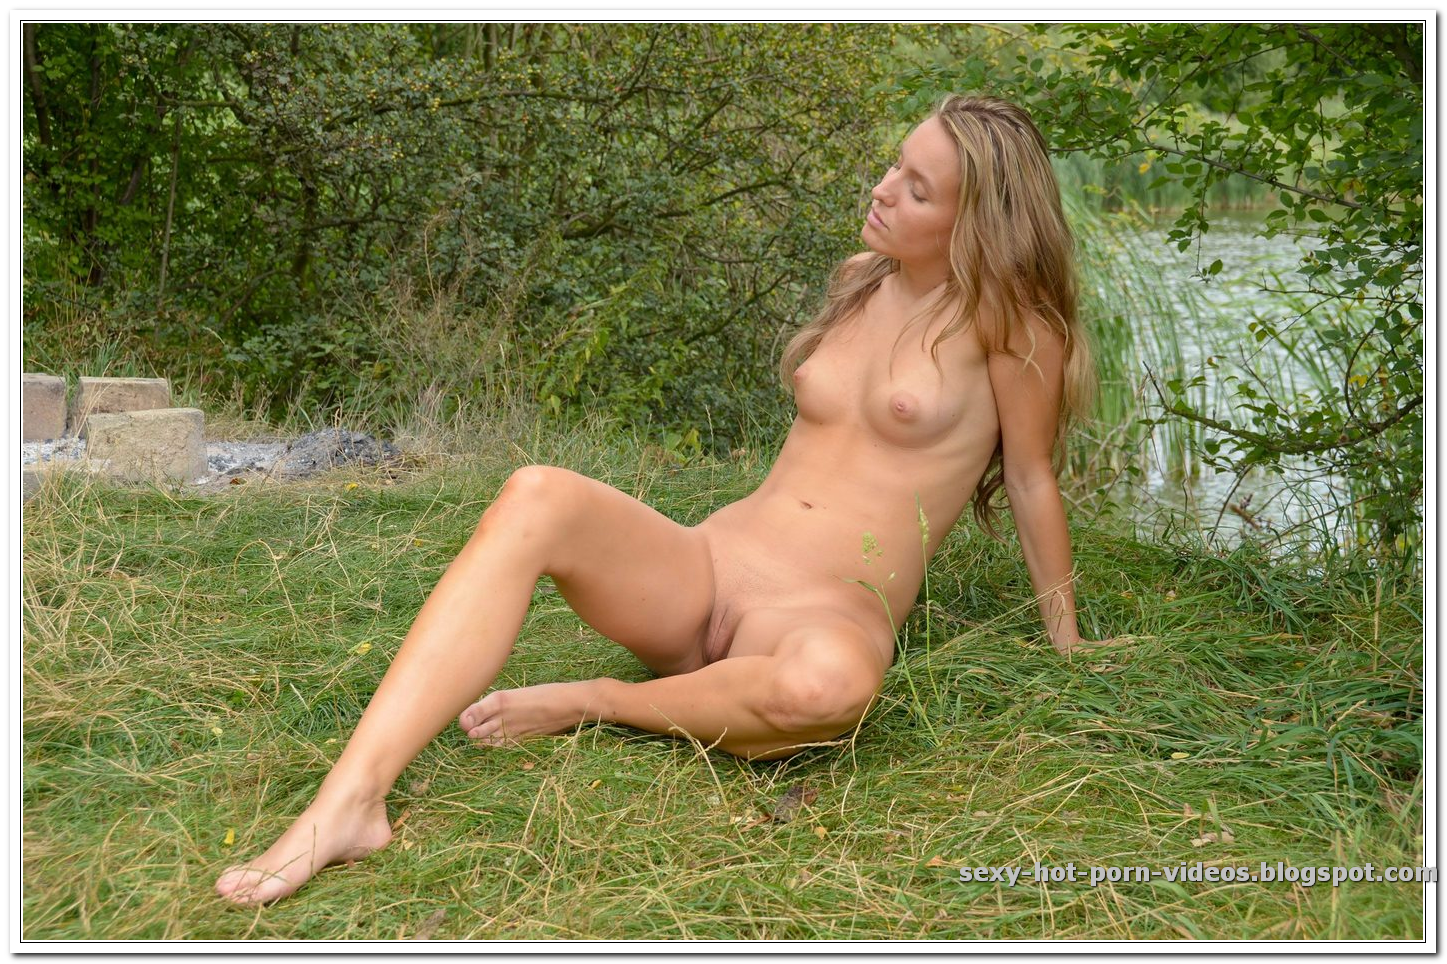 outdoors hot girl pussy